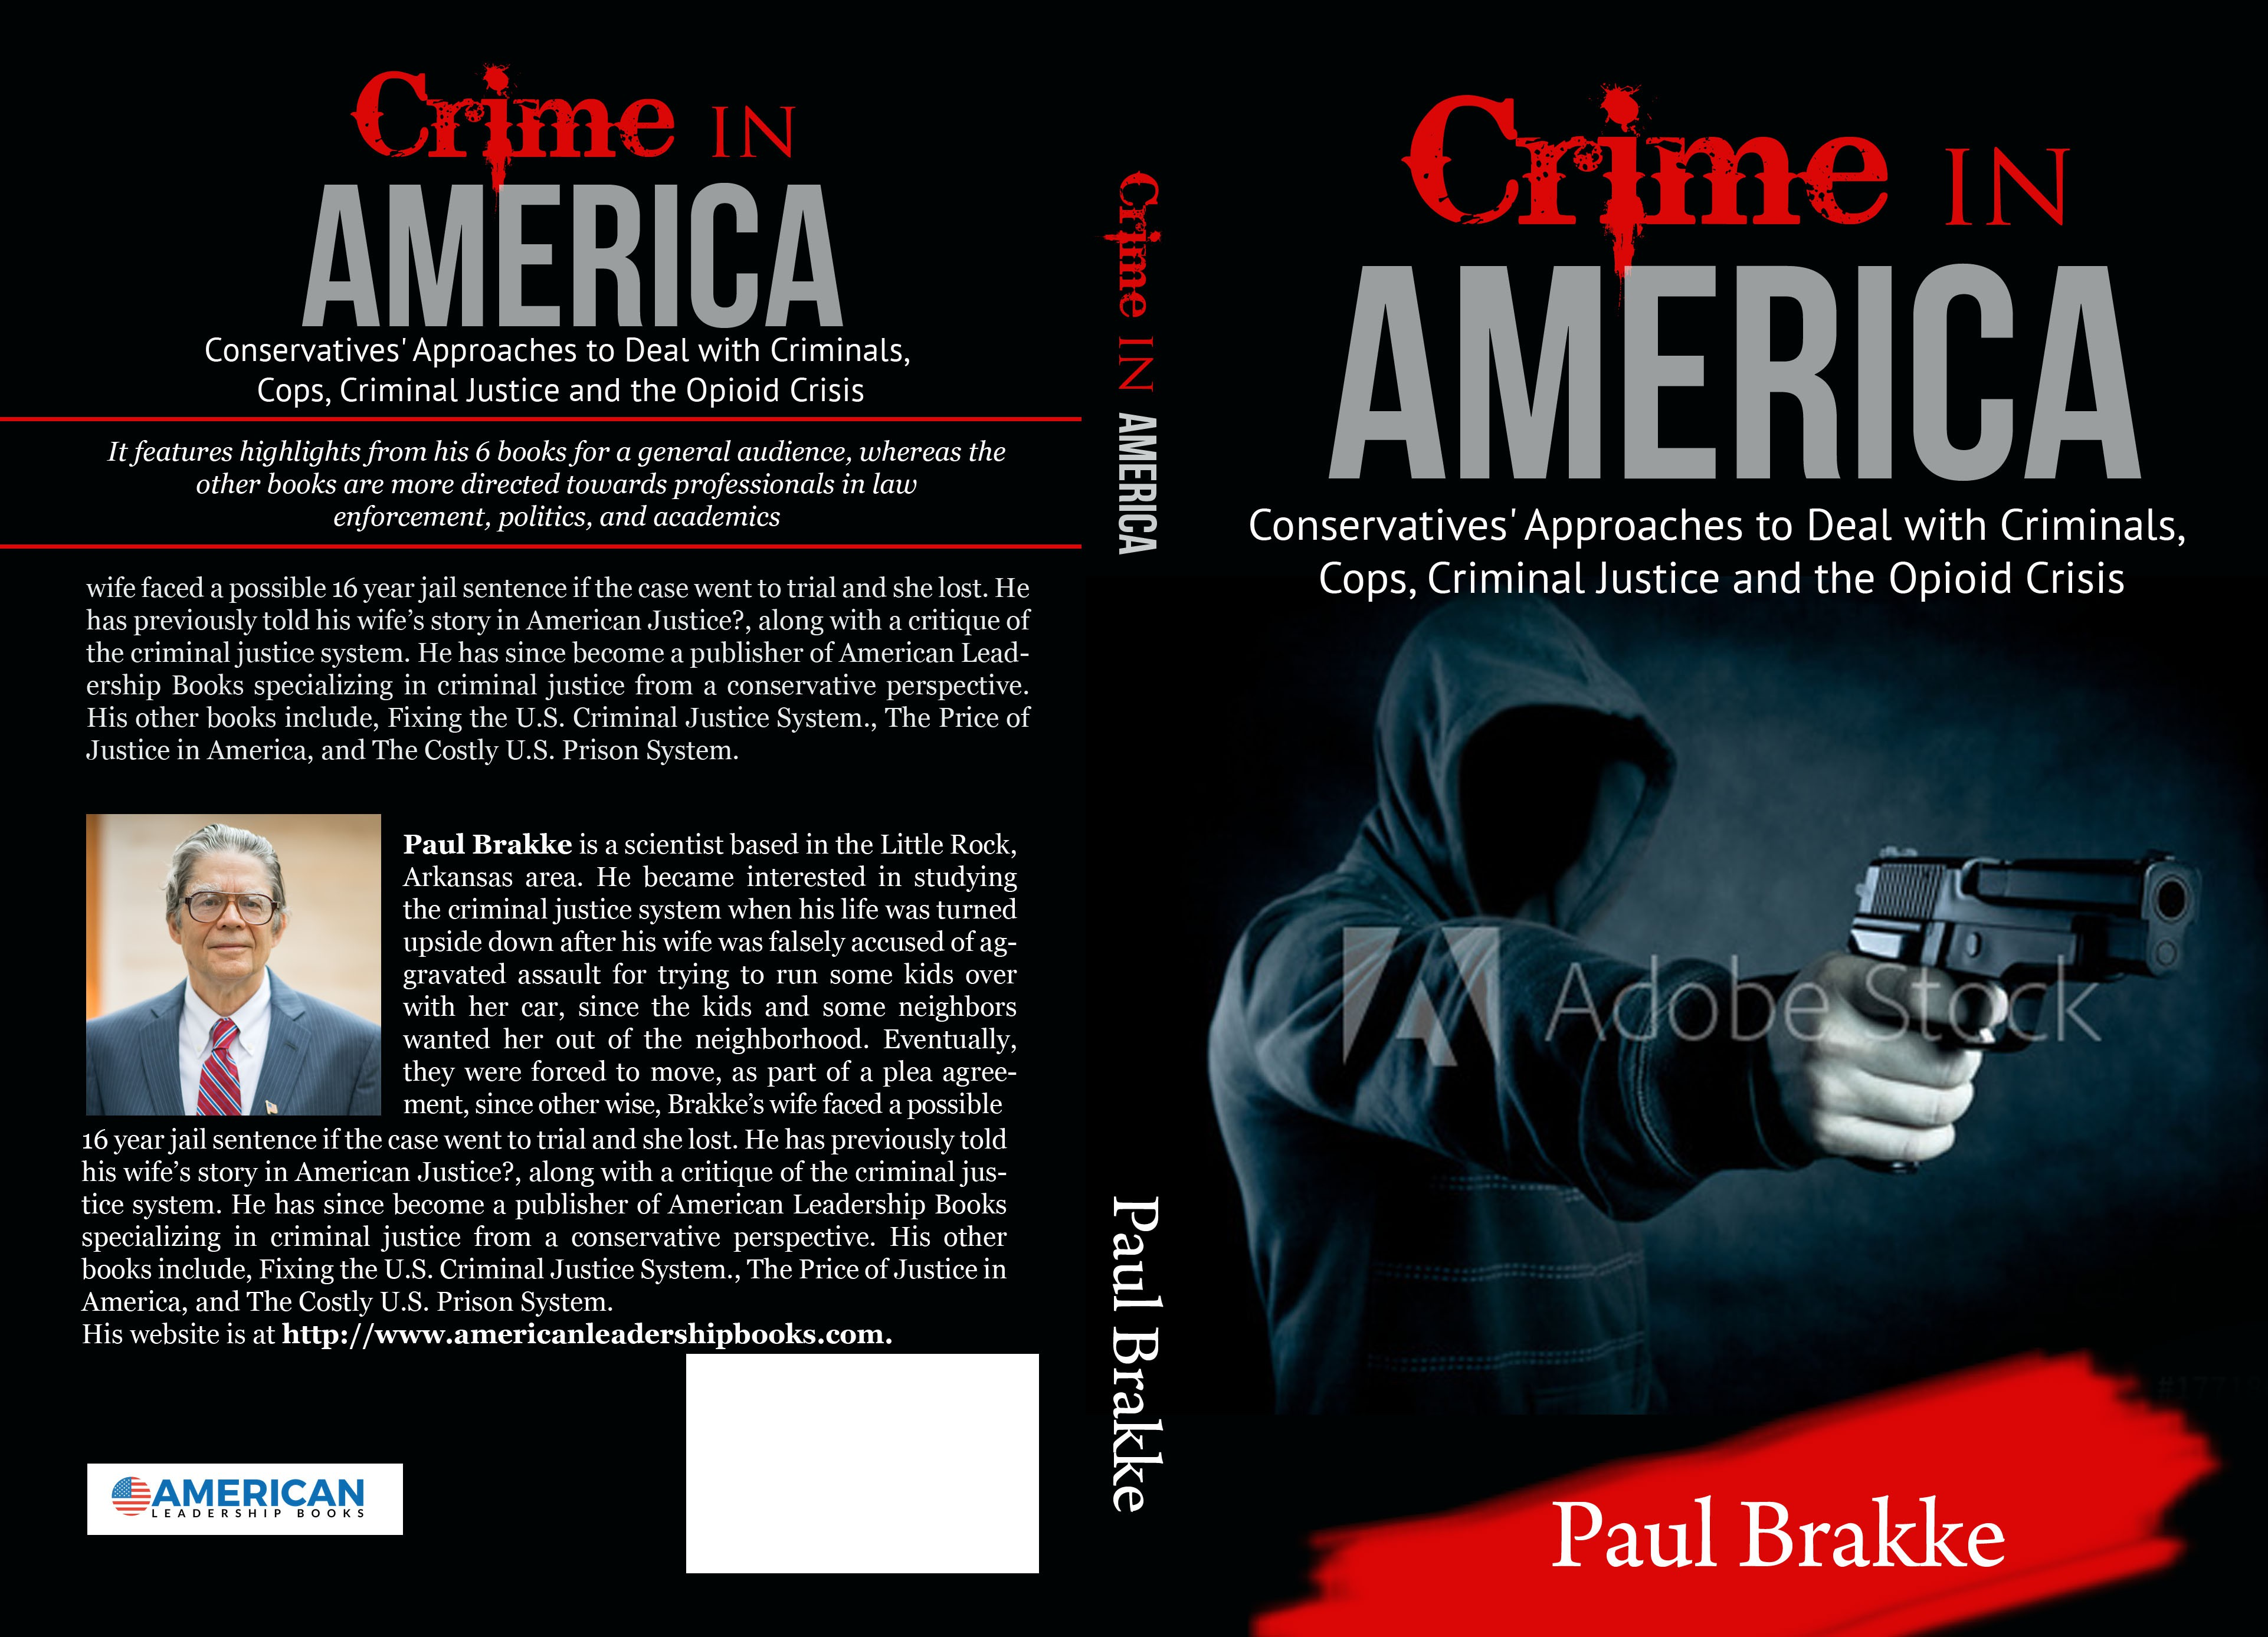 A book about crime in America featuring conservative approaches to deal with criminal justice